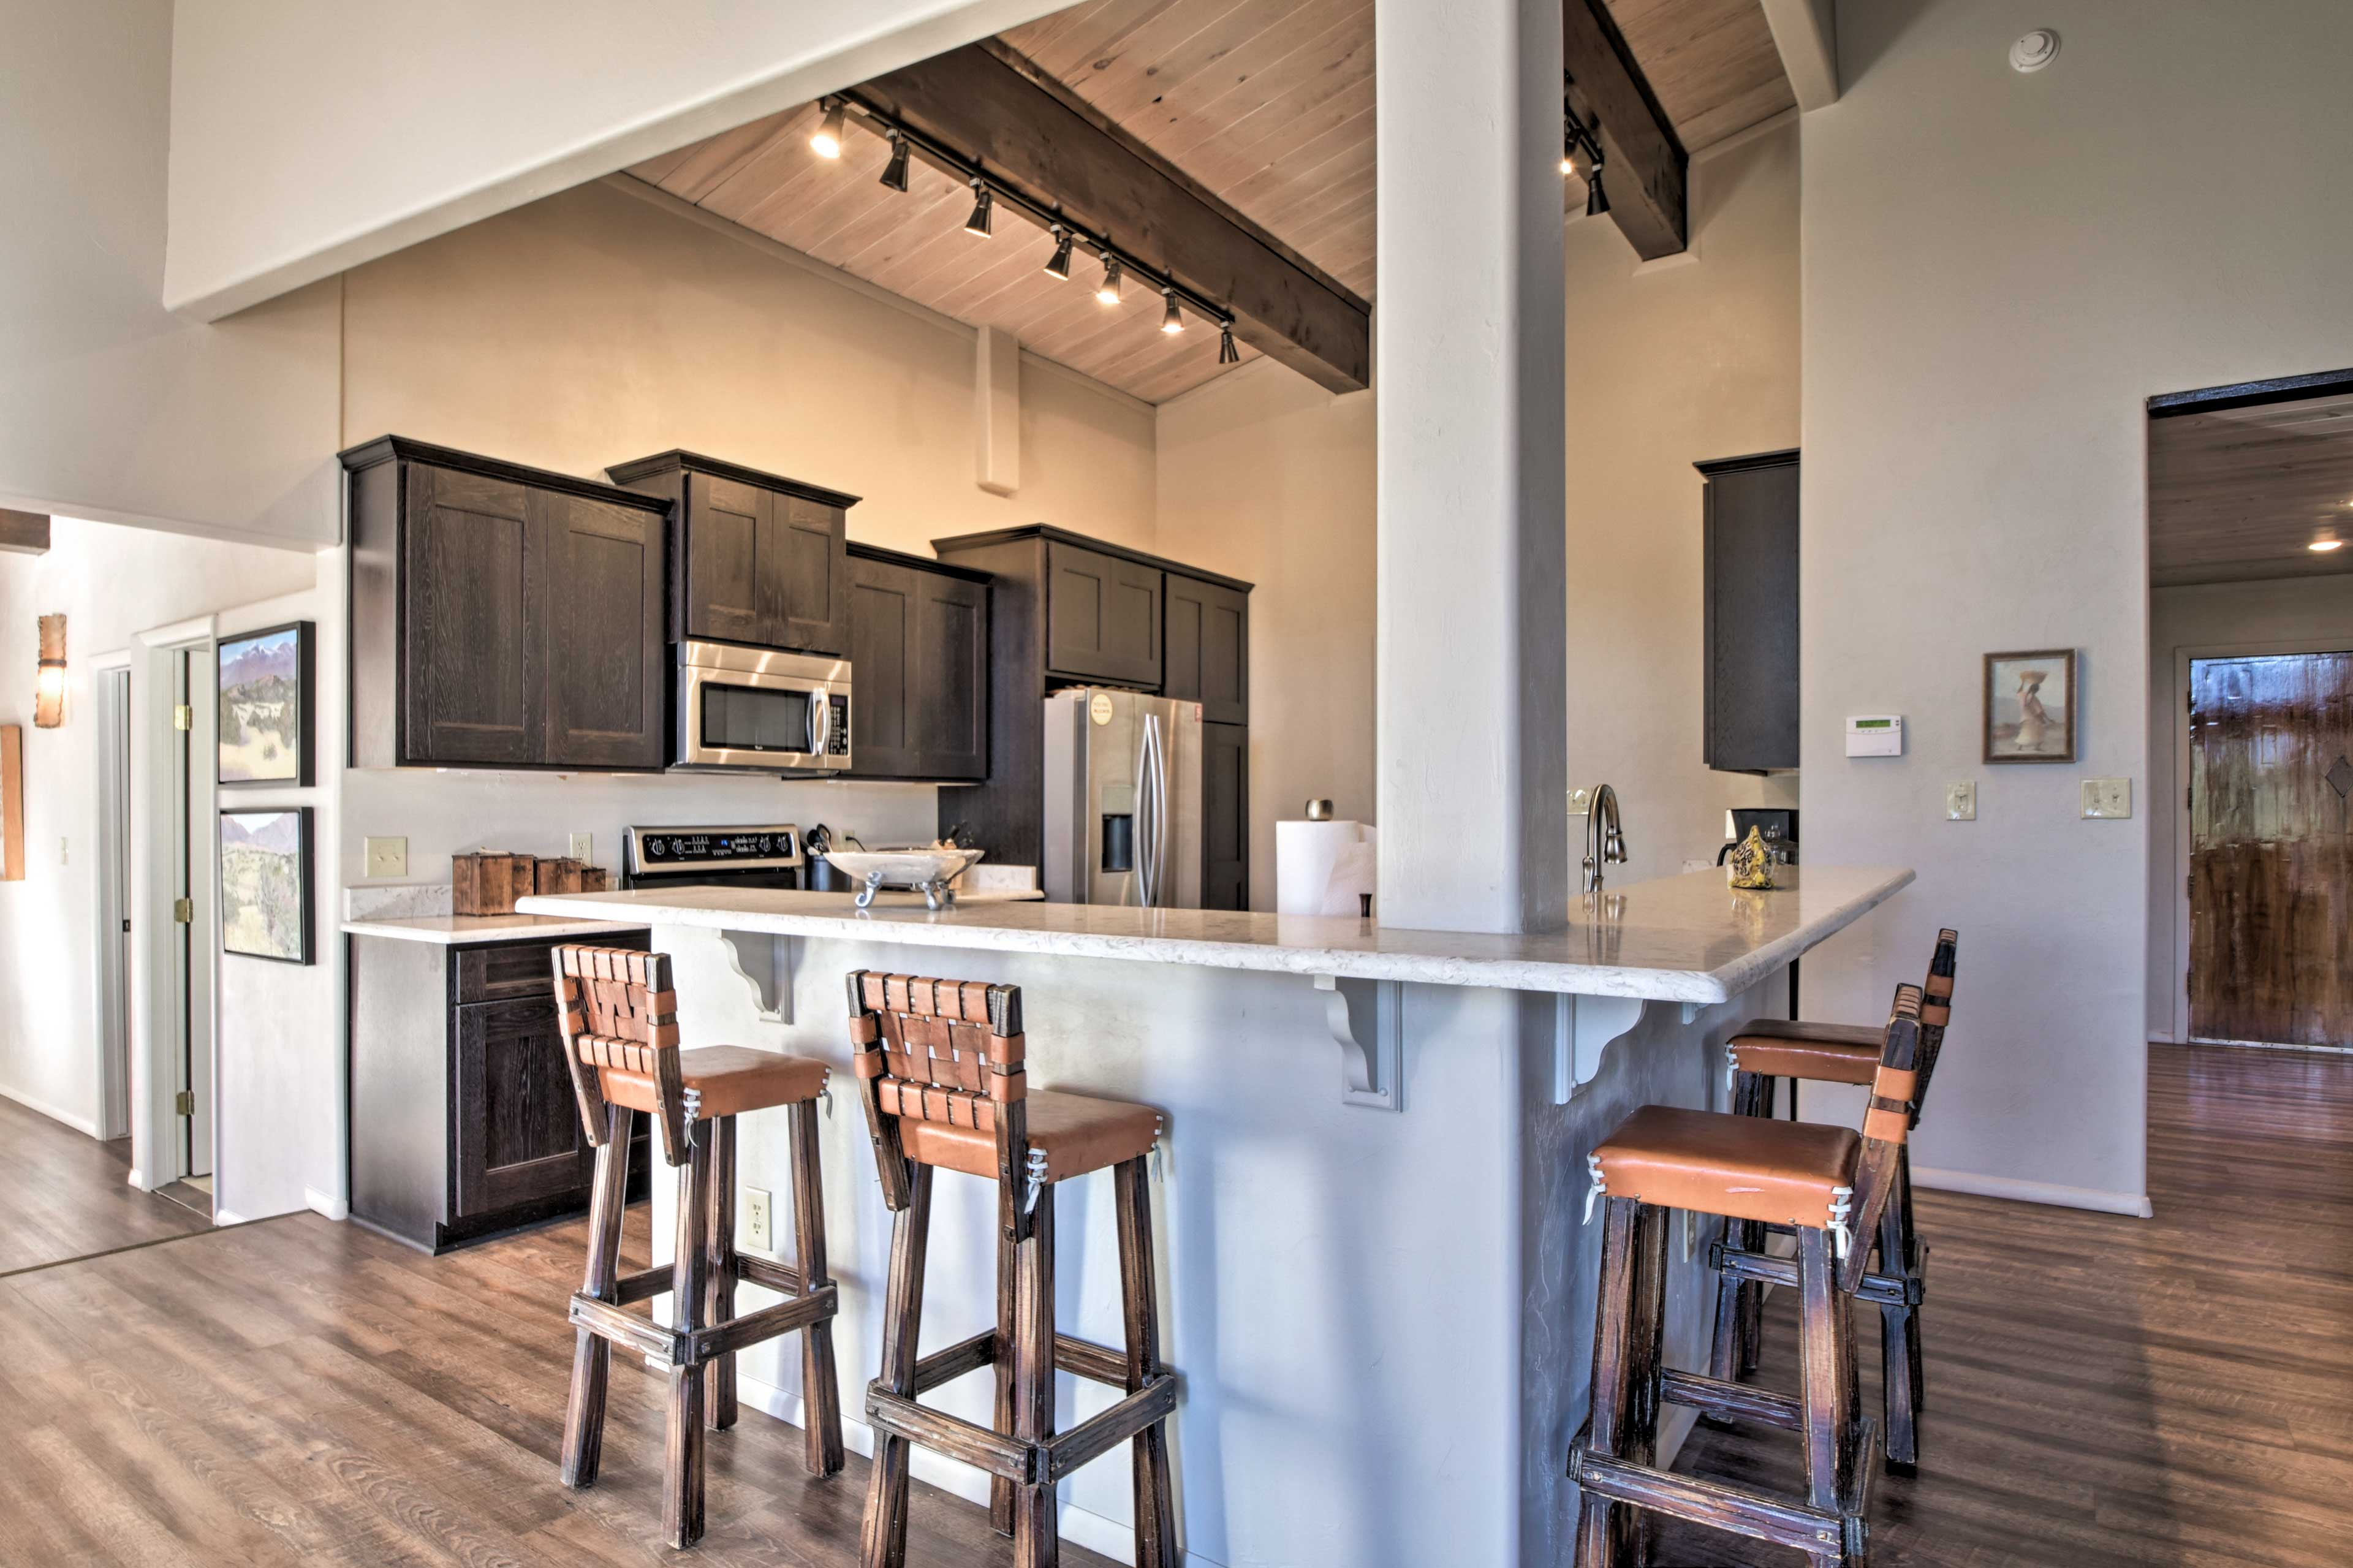 Just steps away, the kitchen features 4 chairs at the breakfast bar.